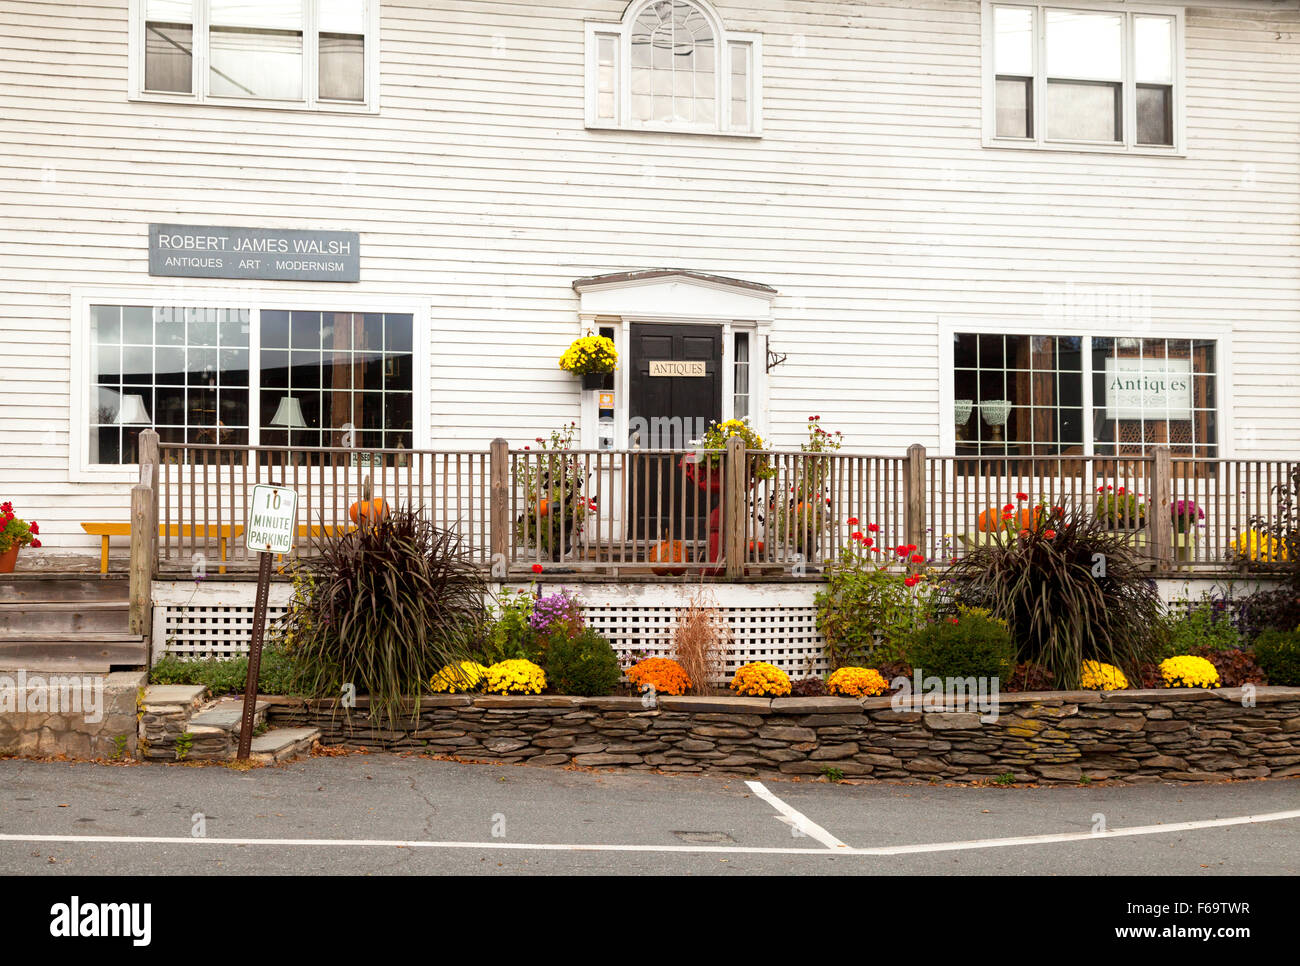 The exterior, Robert James Walsh Antiques store, Quechee, Woodstock, Vermont USA - Stock Image